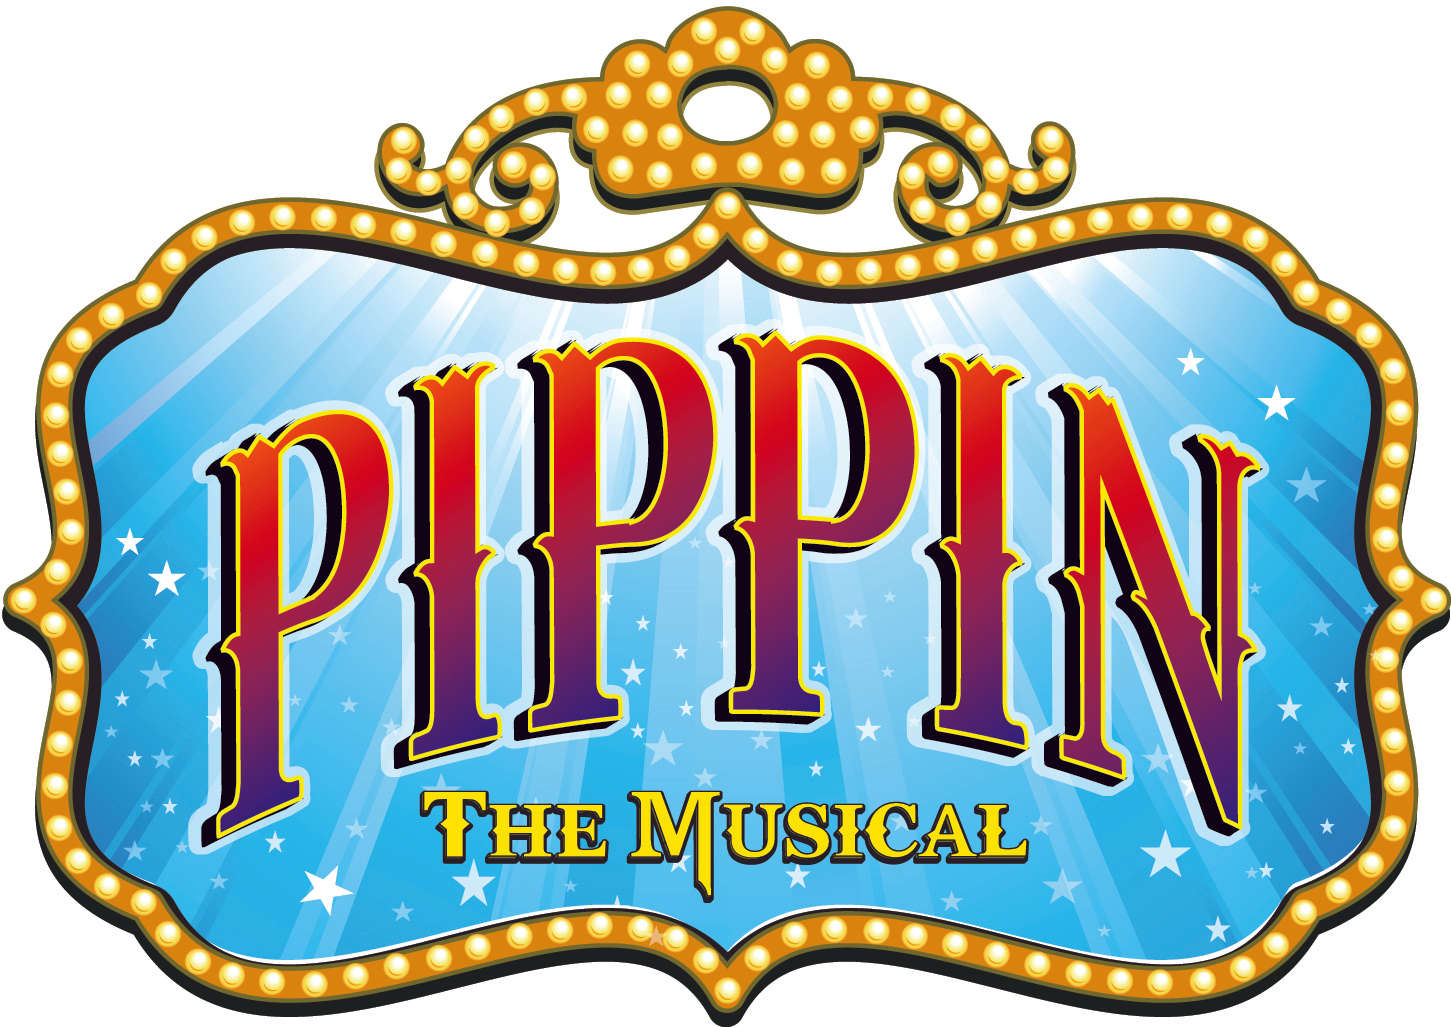 Logo of the show, Pippin